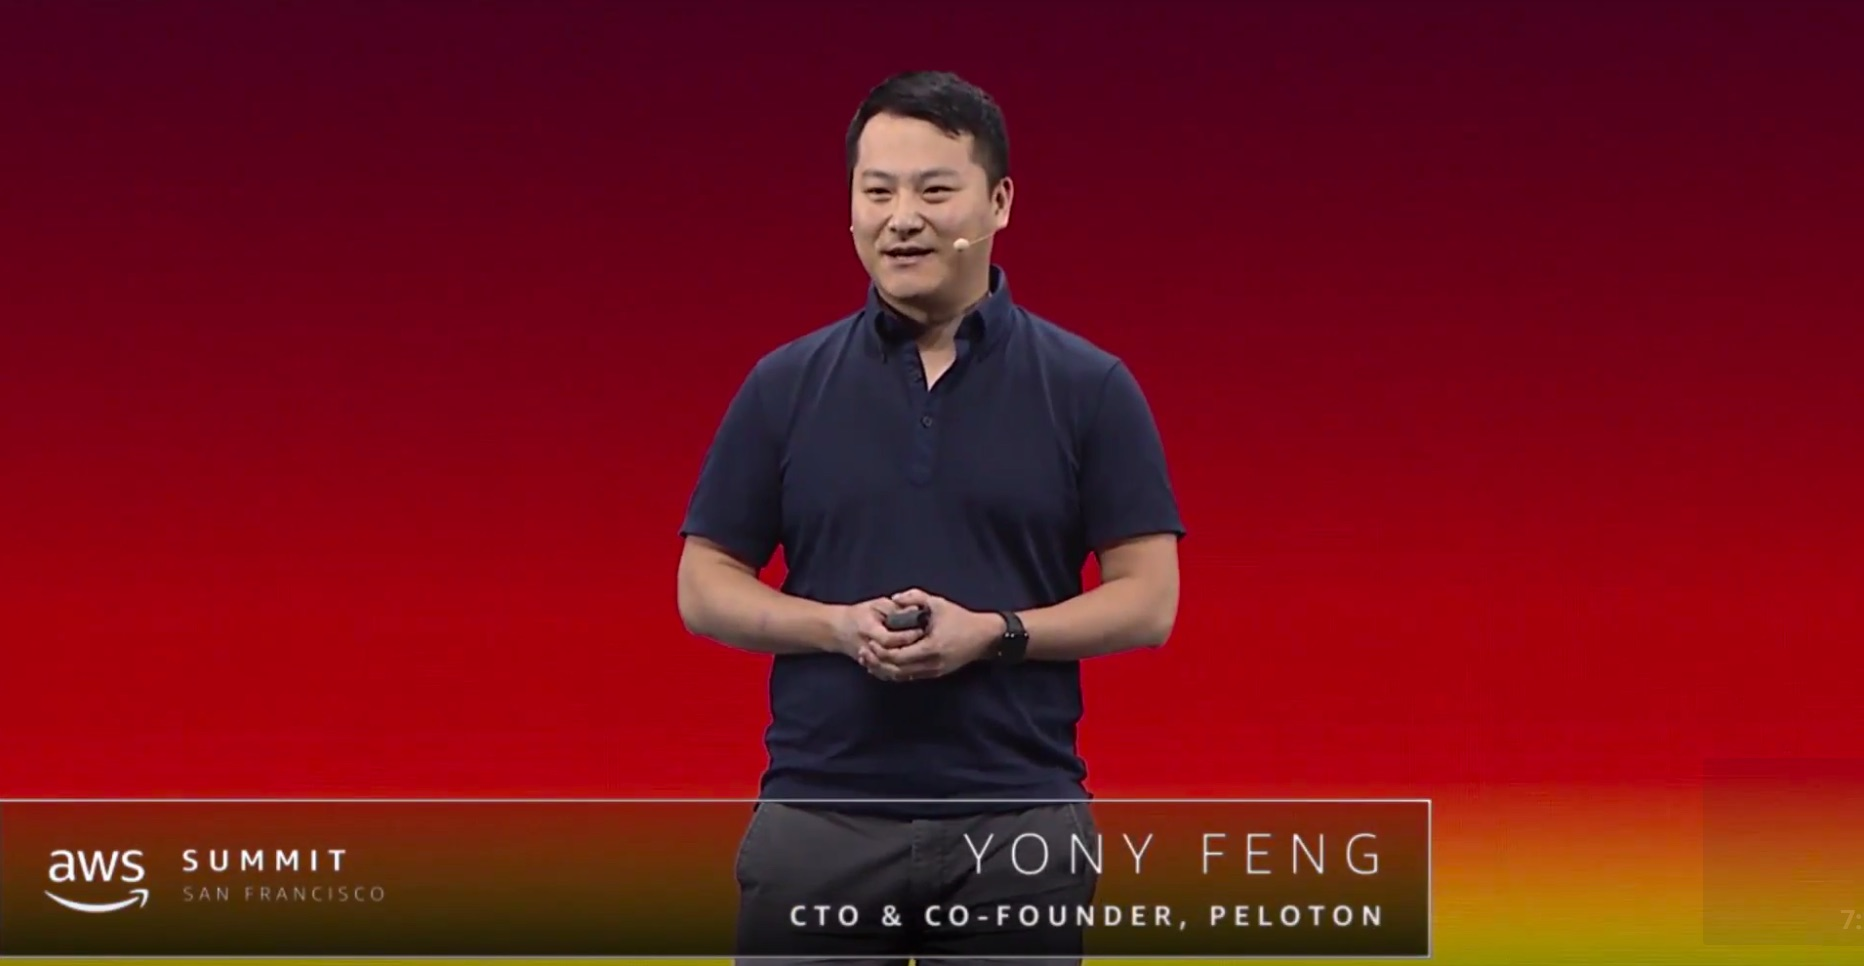 AWS_Summit_Series_2018_-_San_Francisco__Yony_Feng__CTO___Co-Founder_of_Peloton_-_YouTube